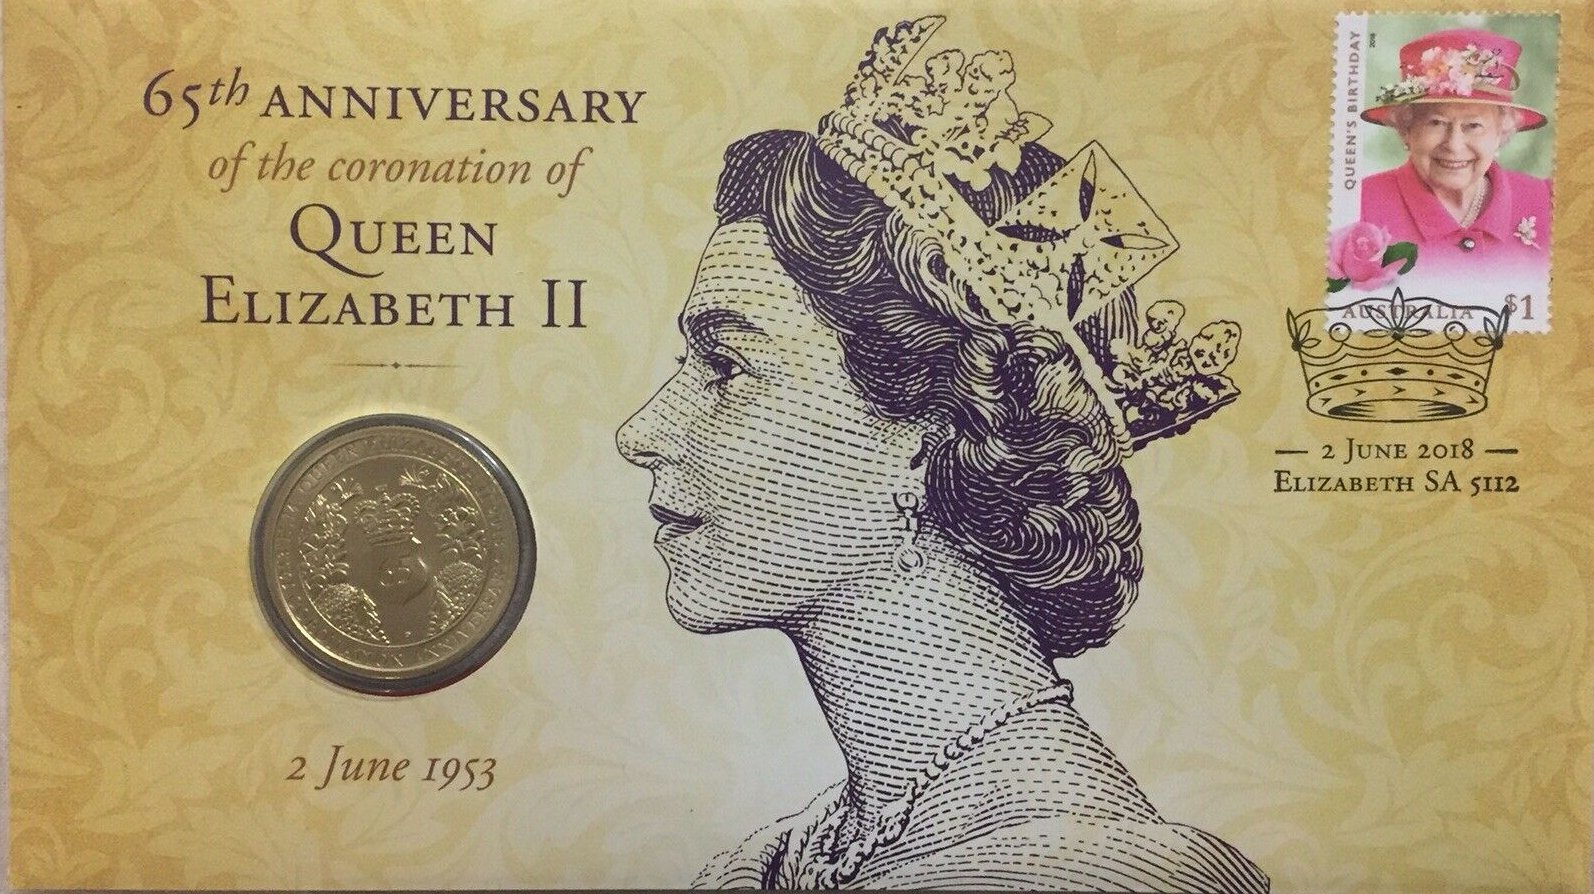 Queen Elizabeth II Perth Mint St 2018 65th Anniversary of the Coronation of H.M